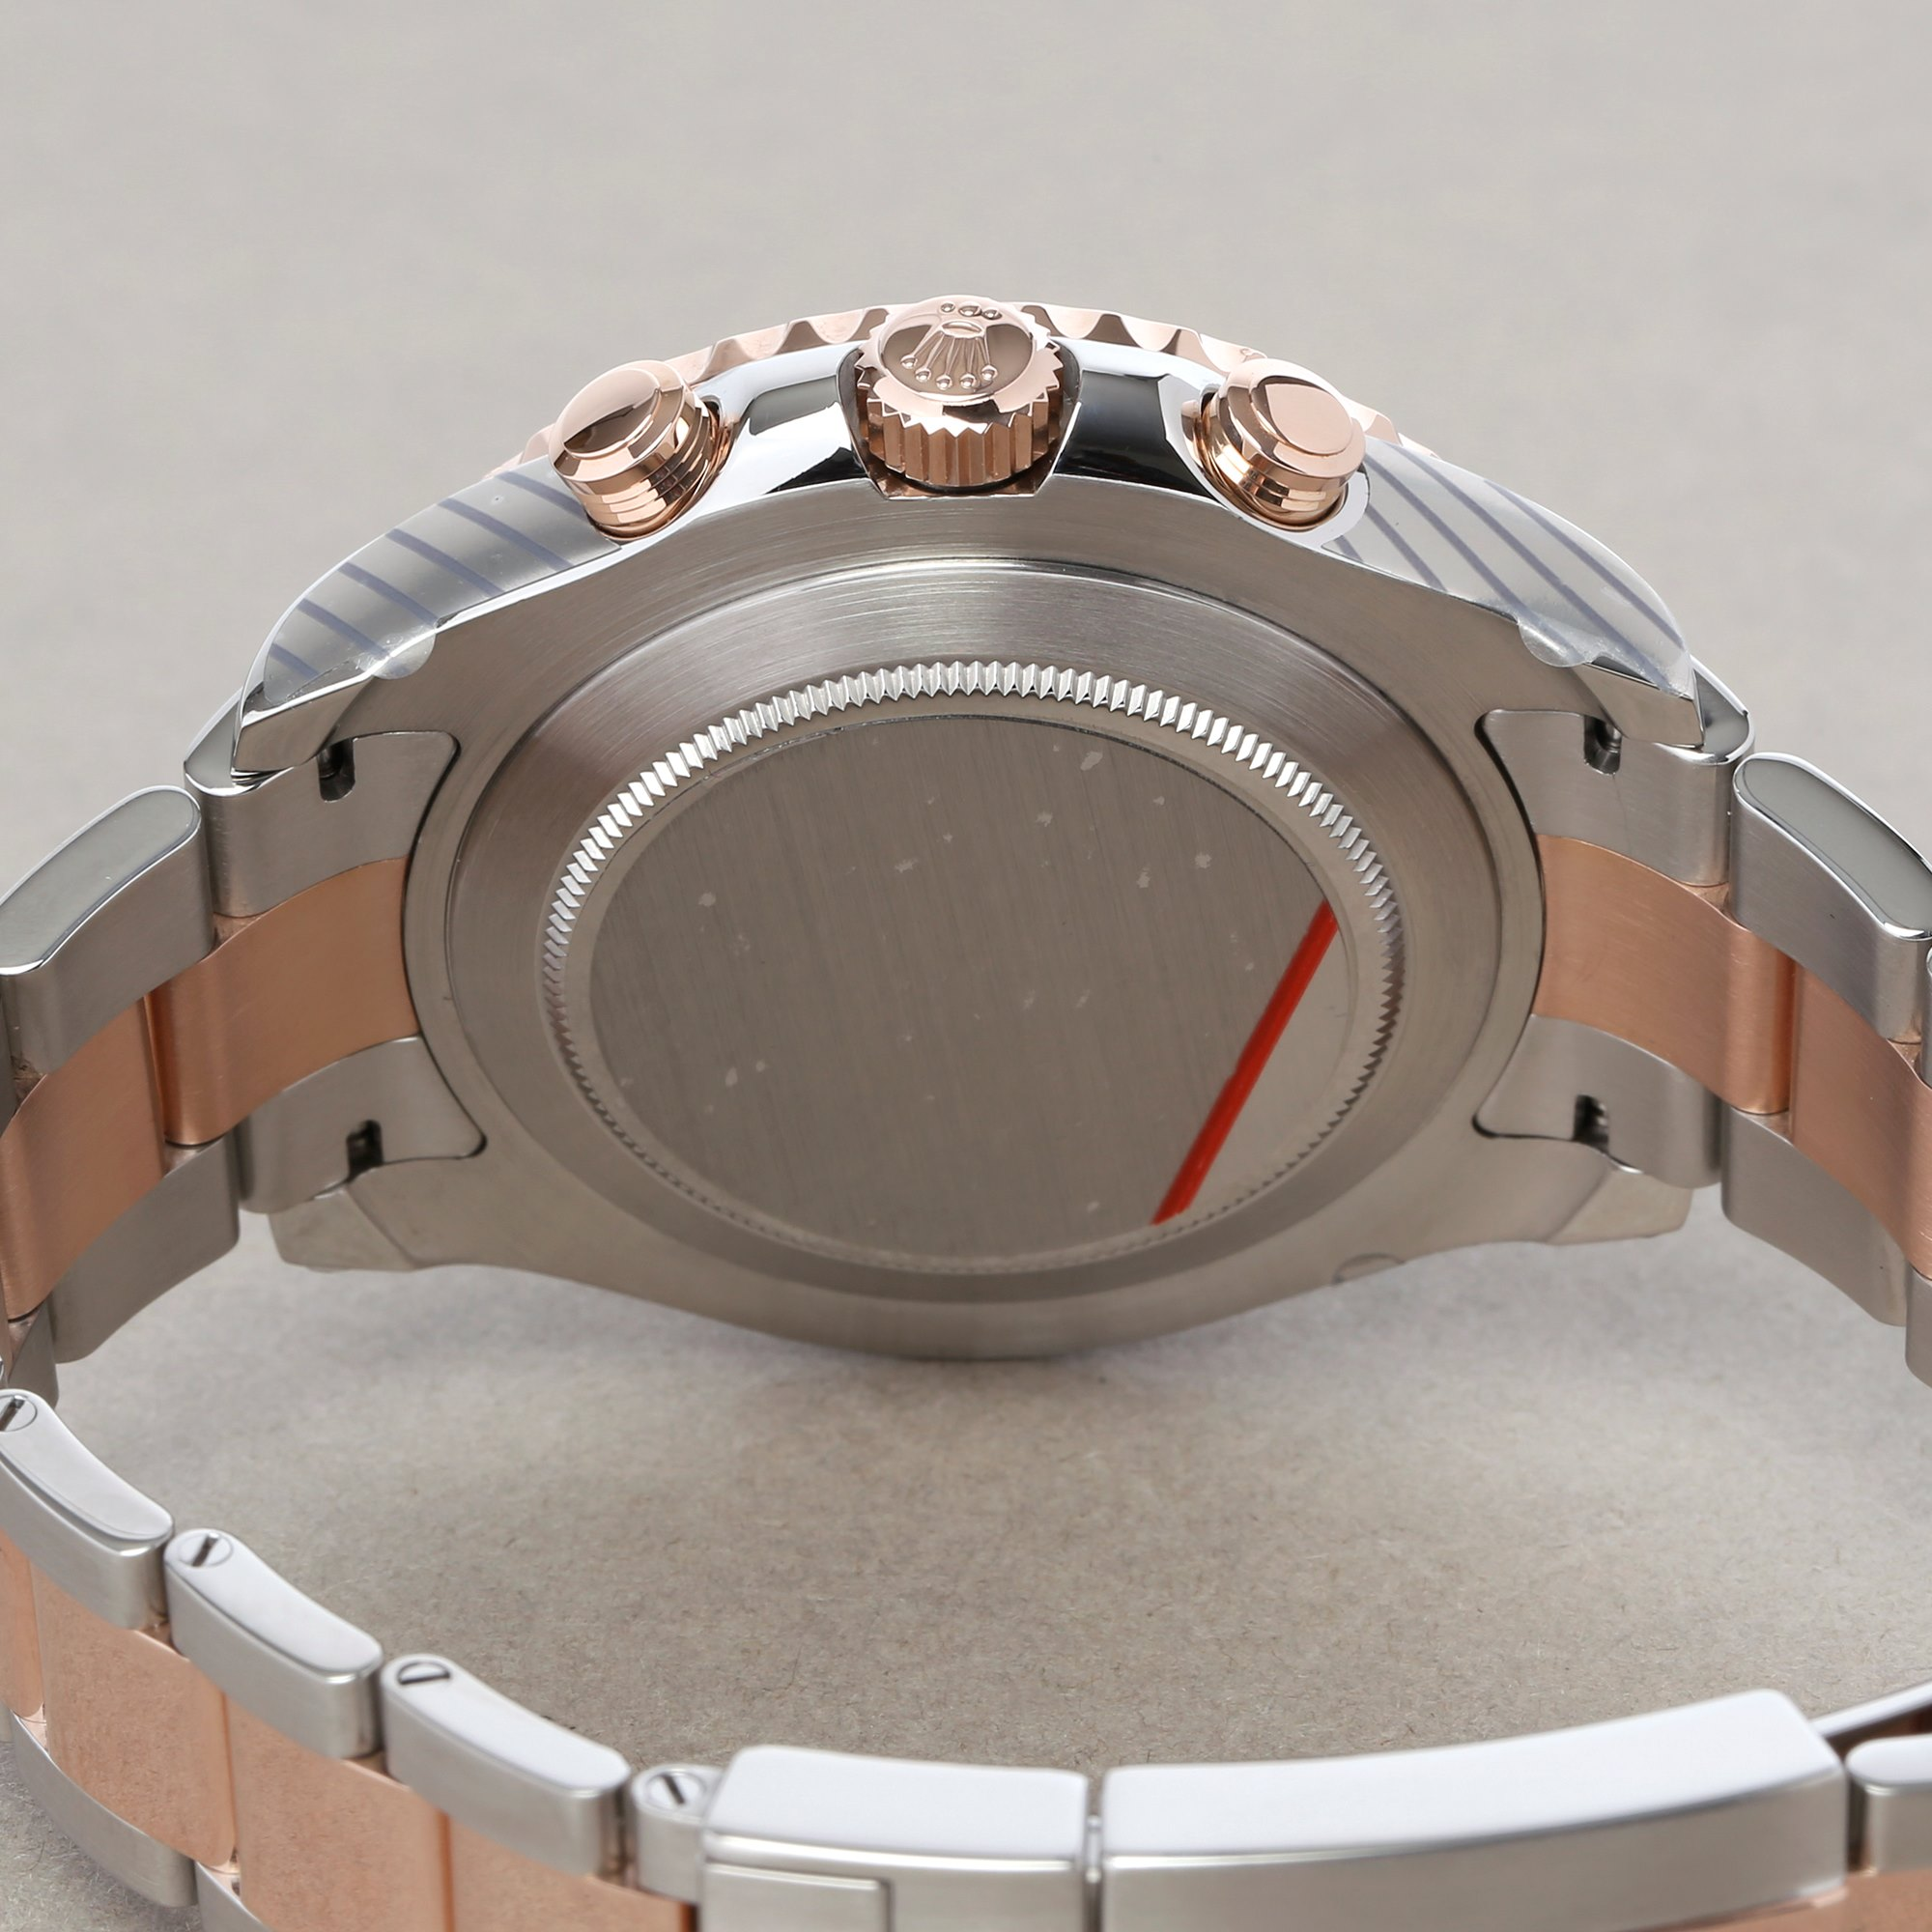 Rolex Yacht-Master II 116681 Men's Rose Gold & Stainless Steel Watch - Image 5 of 10